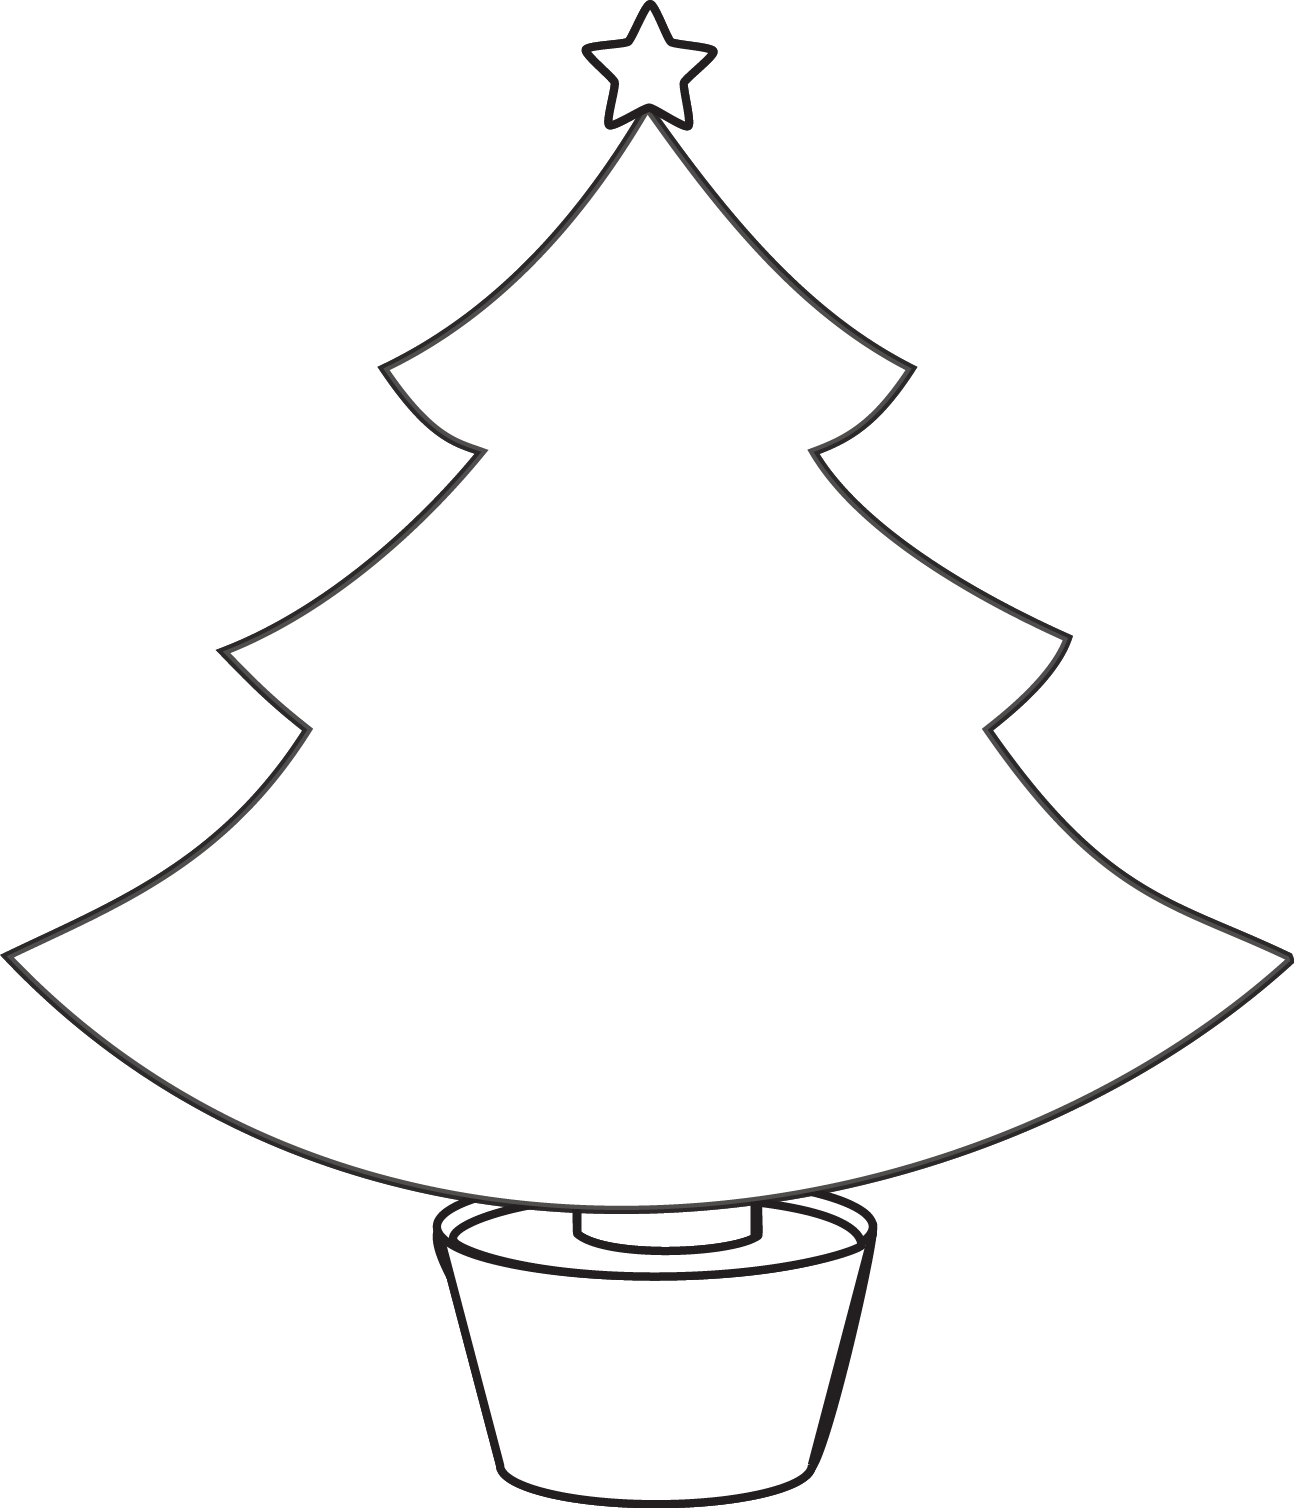 Christmas Tree Images Black And White   Free download on ClipArtMag